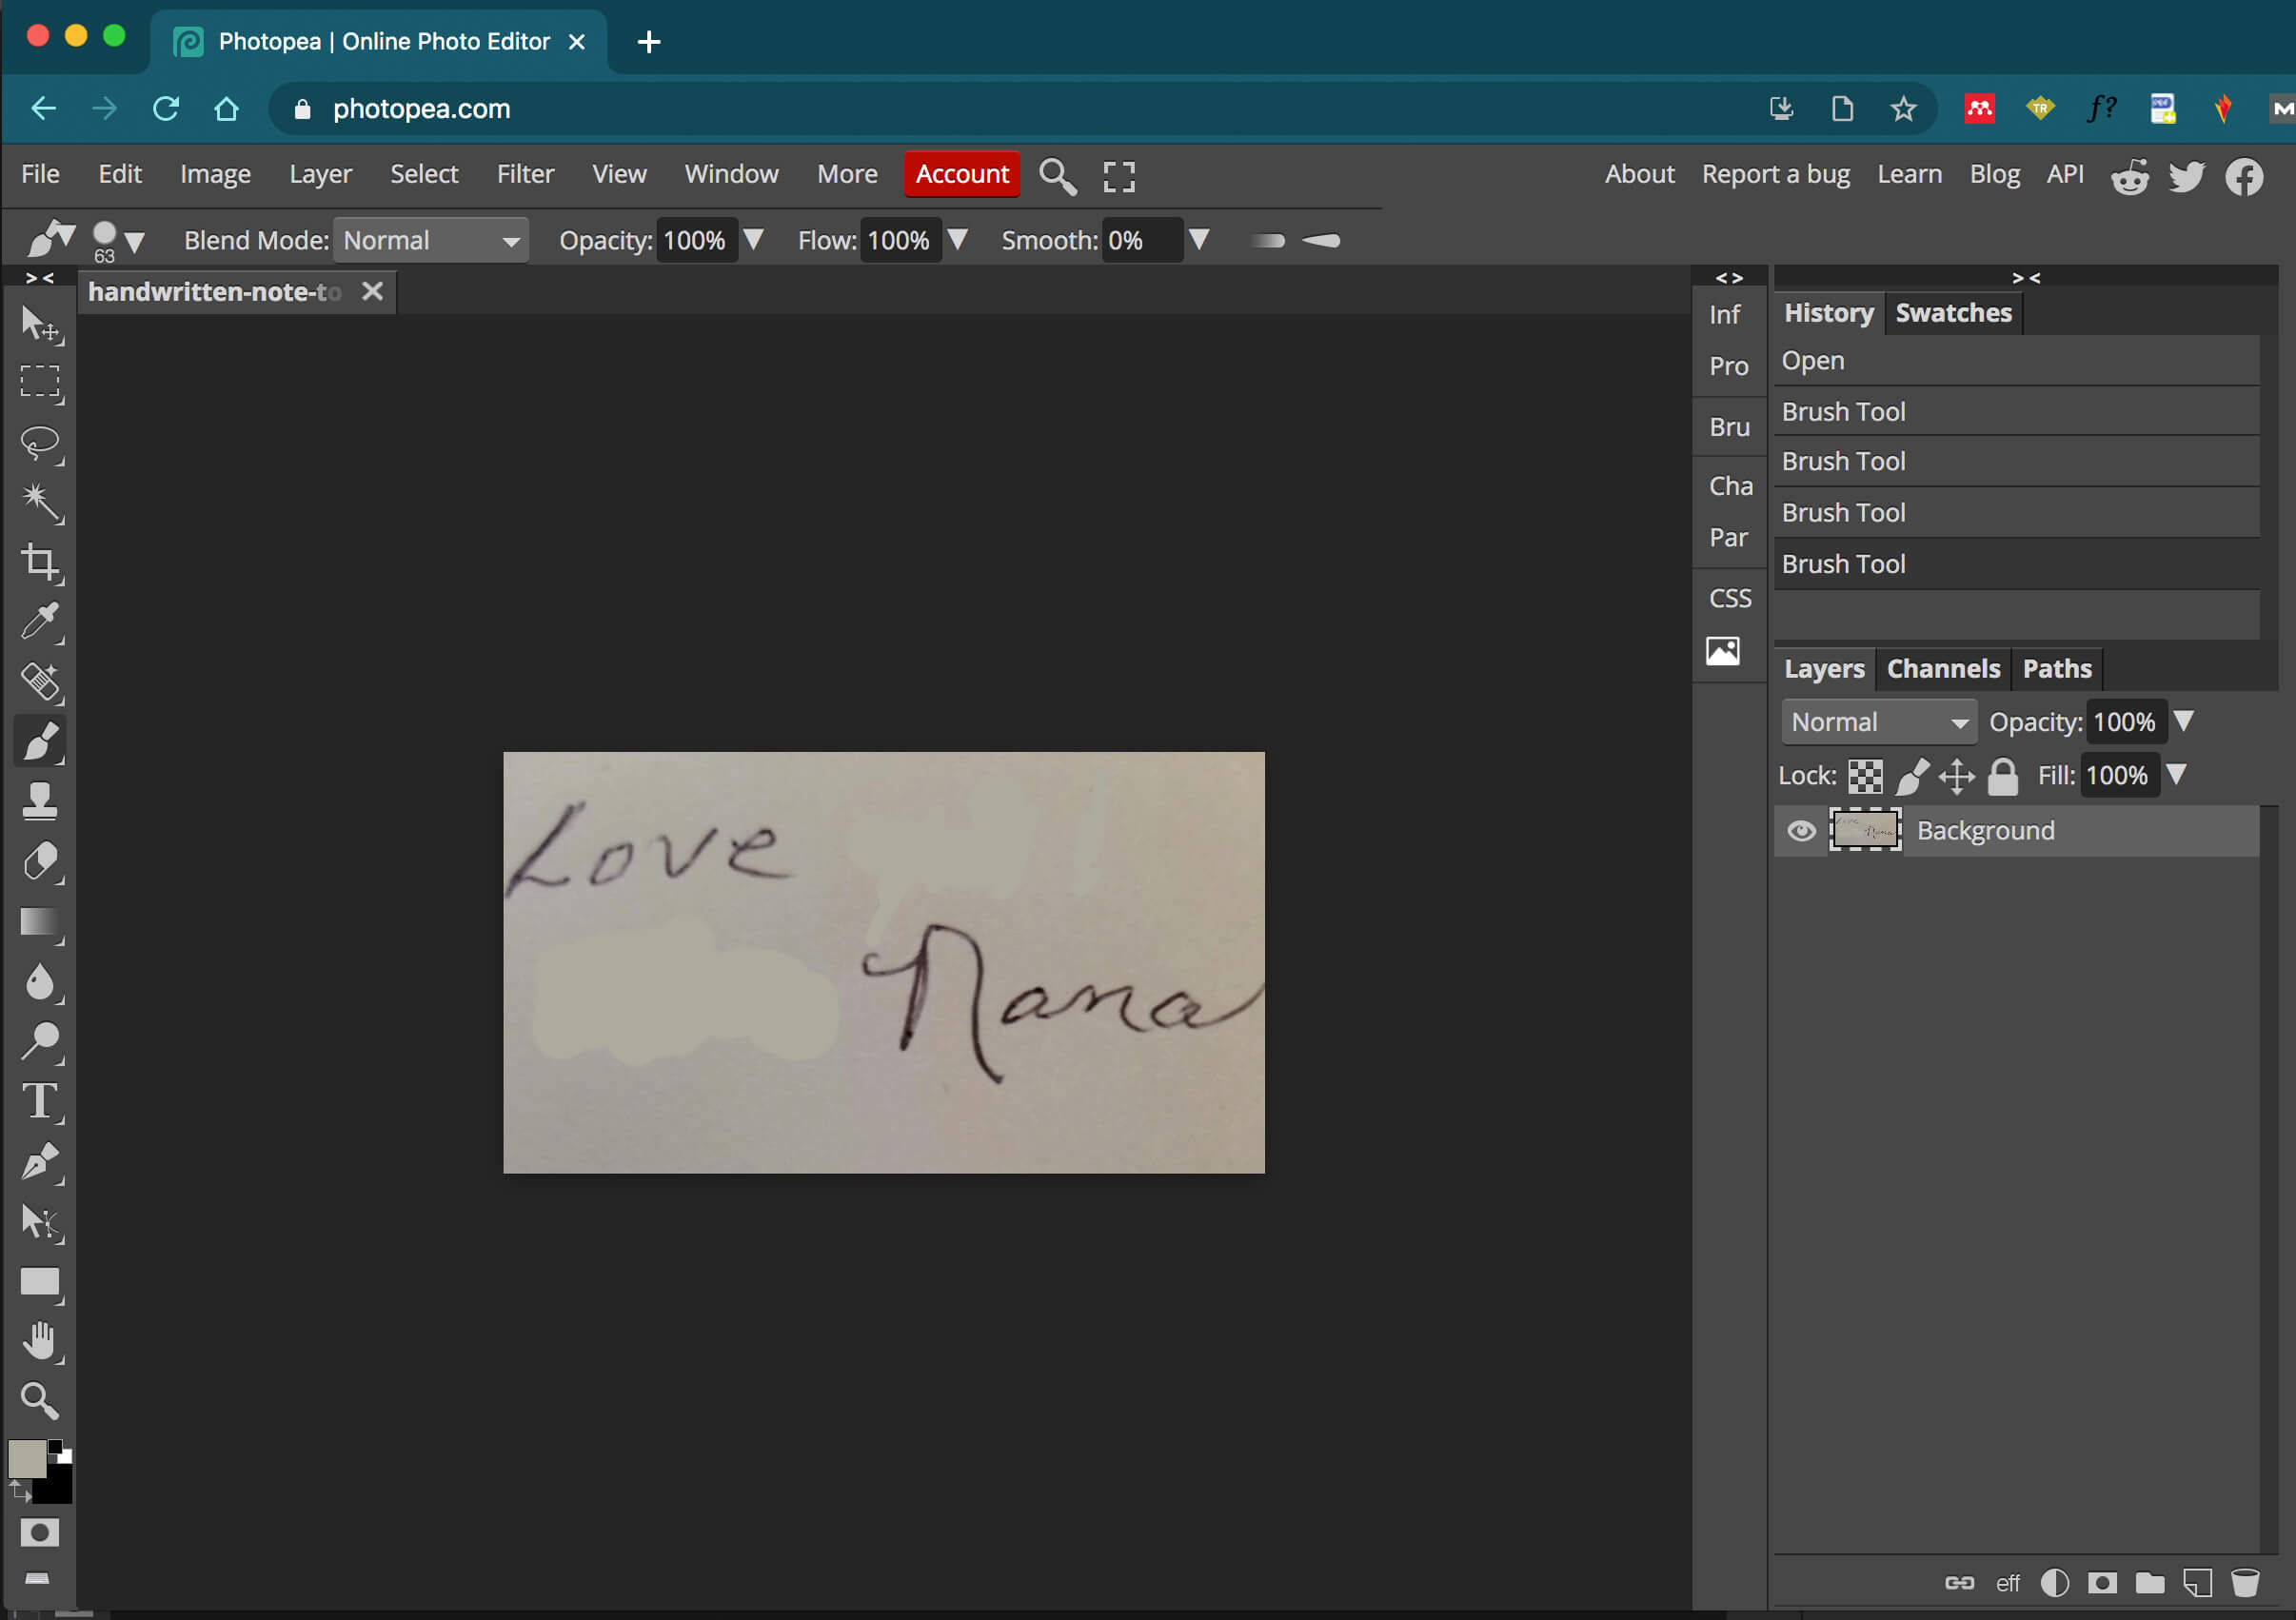 handwriting image with parts erased in Photopea